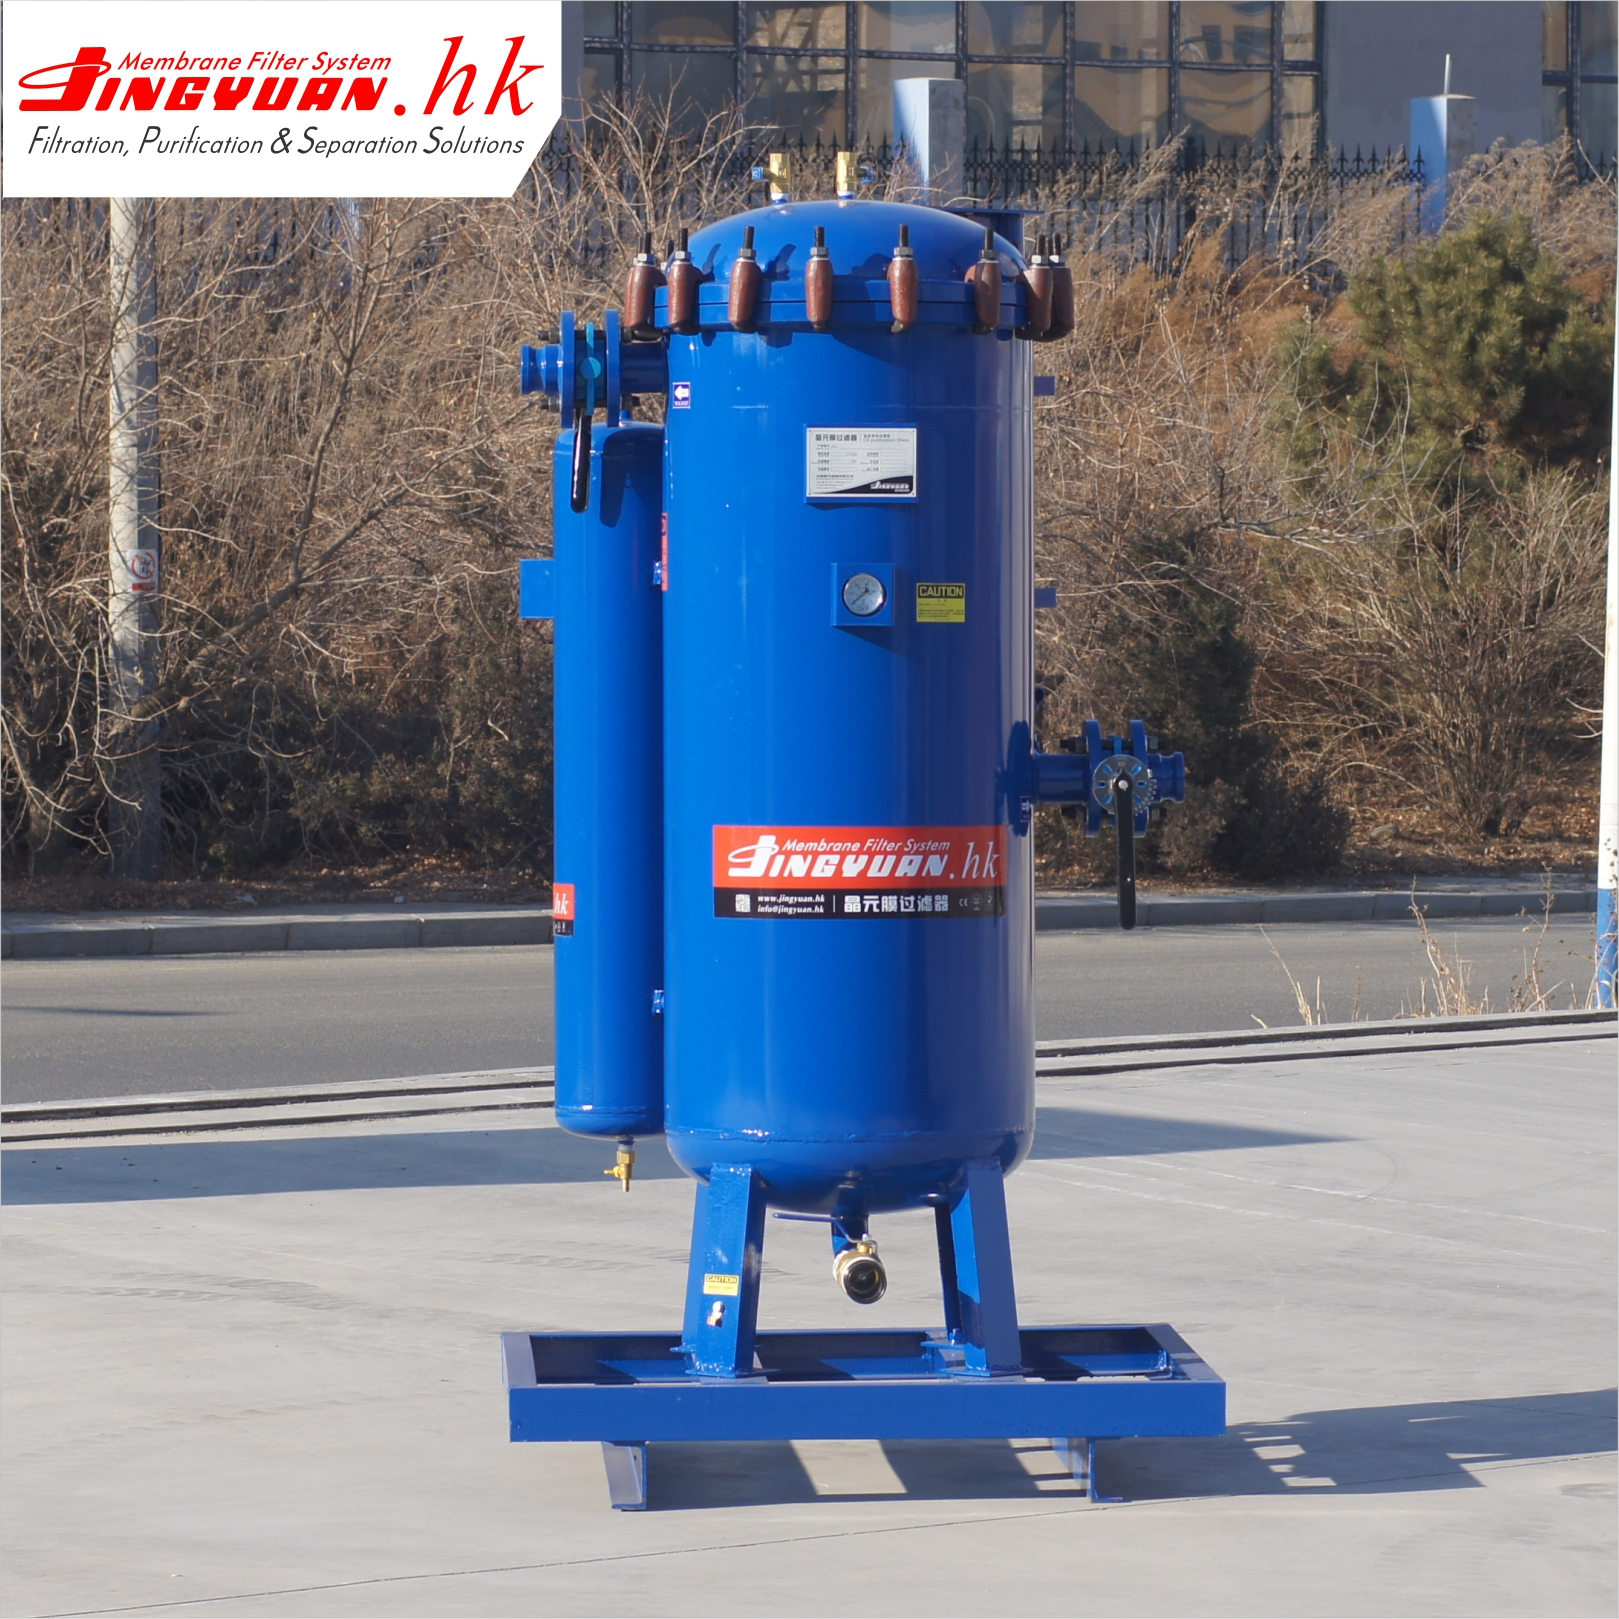 Large Capacity Diesel Purification Filter